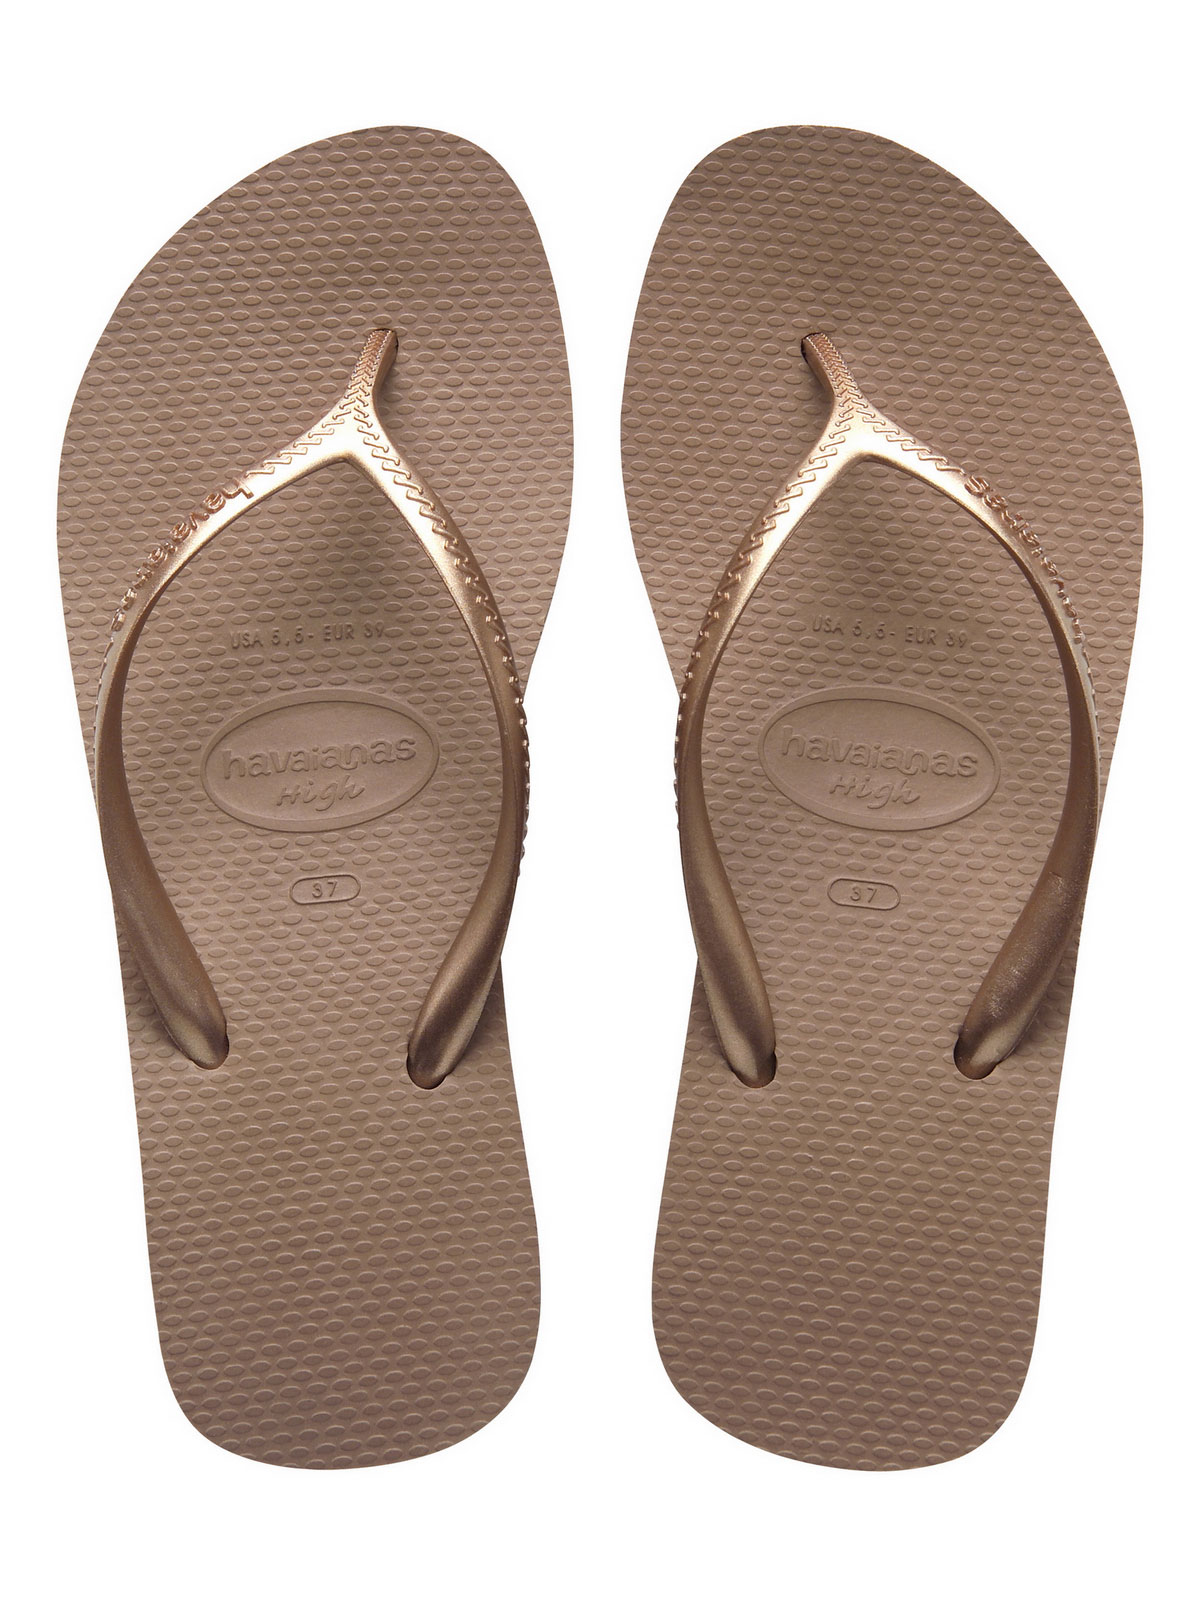 Flip Flops Flip flops High Fashion Rose Gold Brand Havaianas